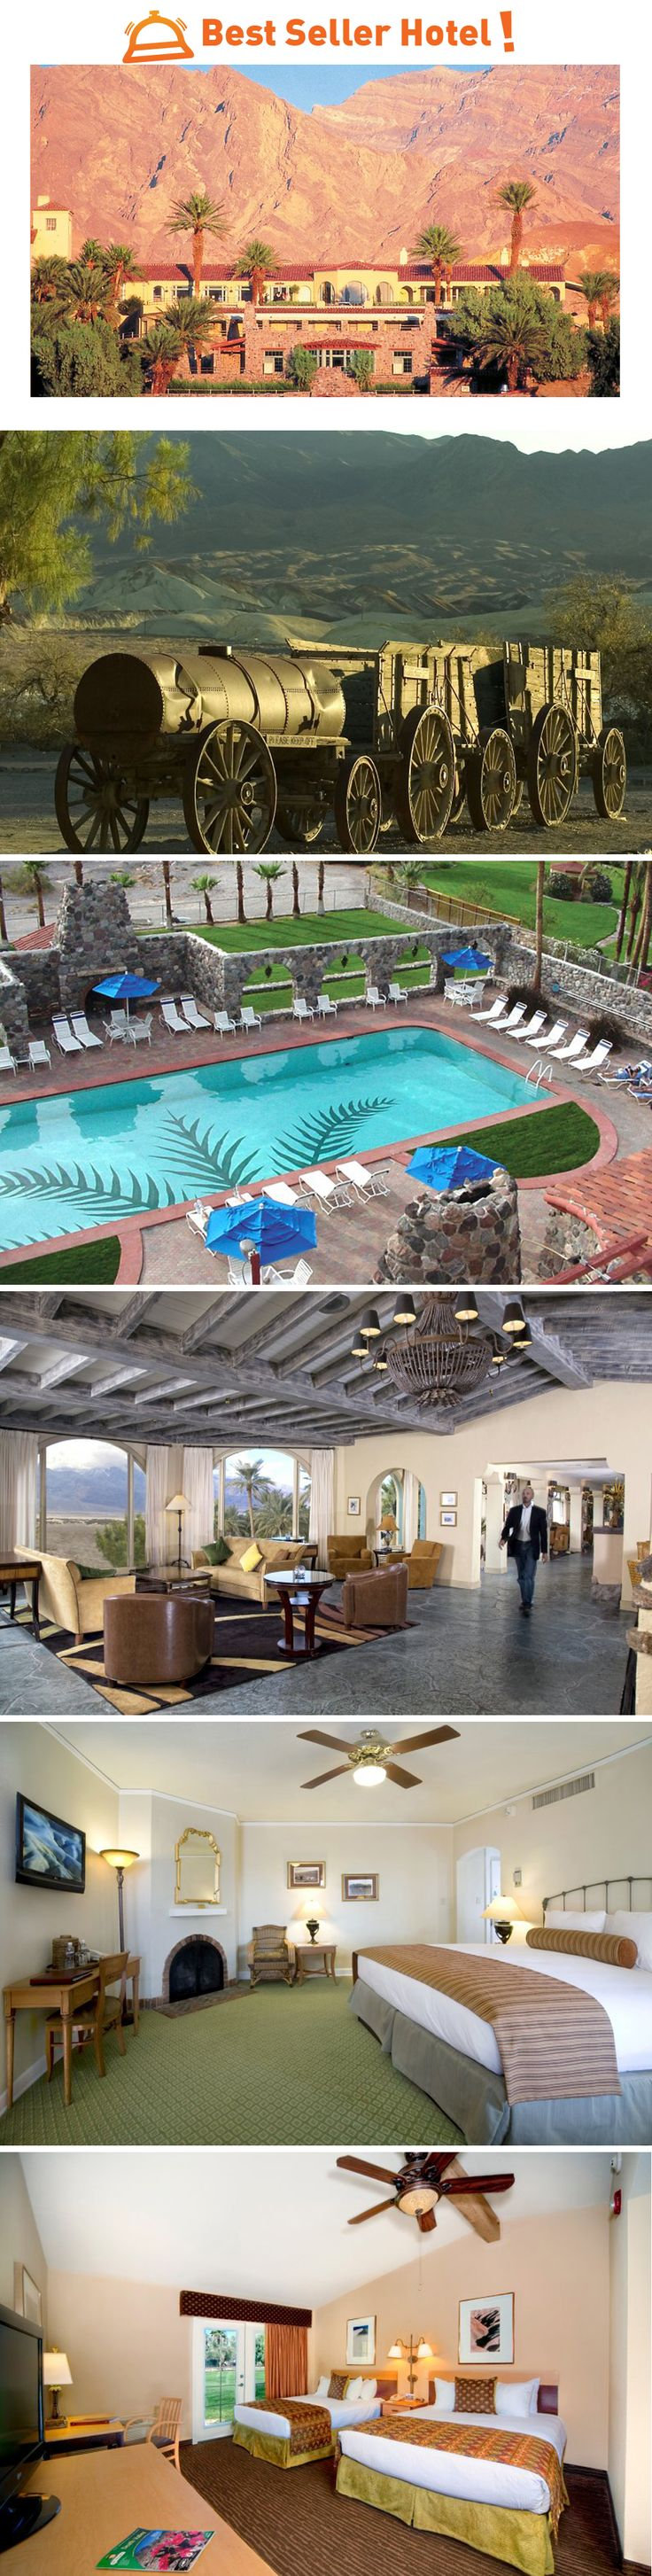 """Furnace Creek Inn Hotel Death Valley! >>> http://www.otel.com/hotels/furnace_creek_ranch_hotel_death_valley.htm?sm=pinterest  Use the code """"TQNXRS95"""" while making your reservation on otel.com, get 10% #discount"""